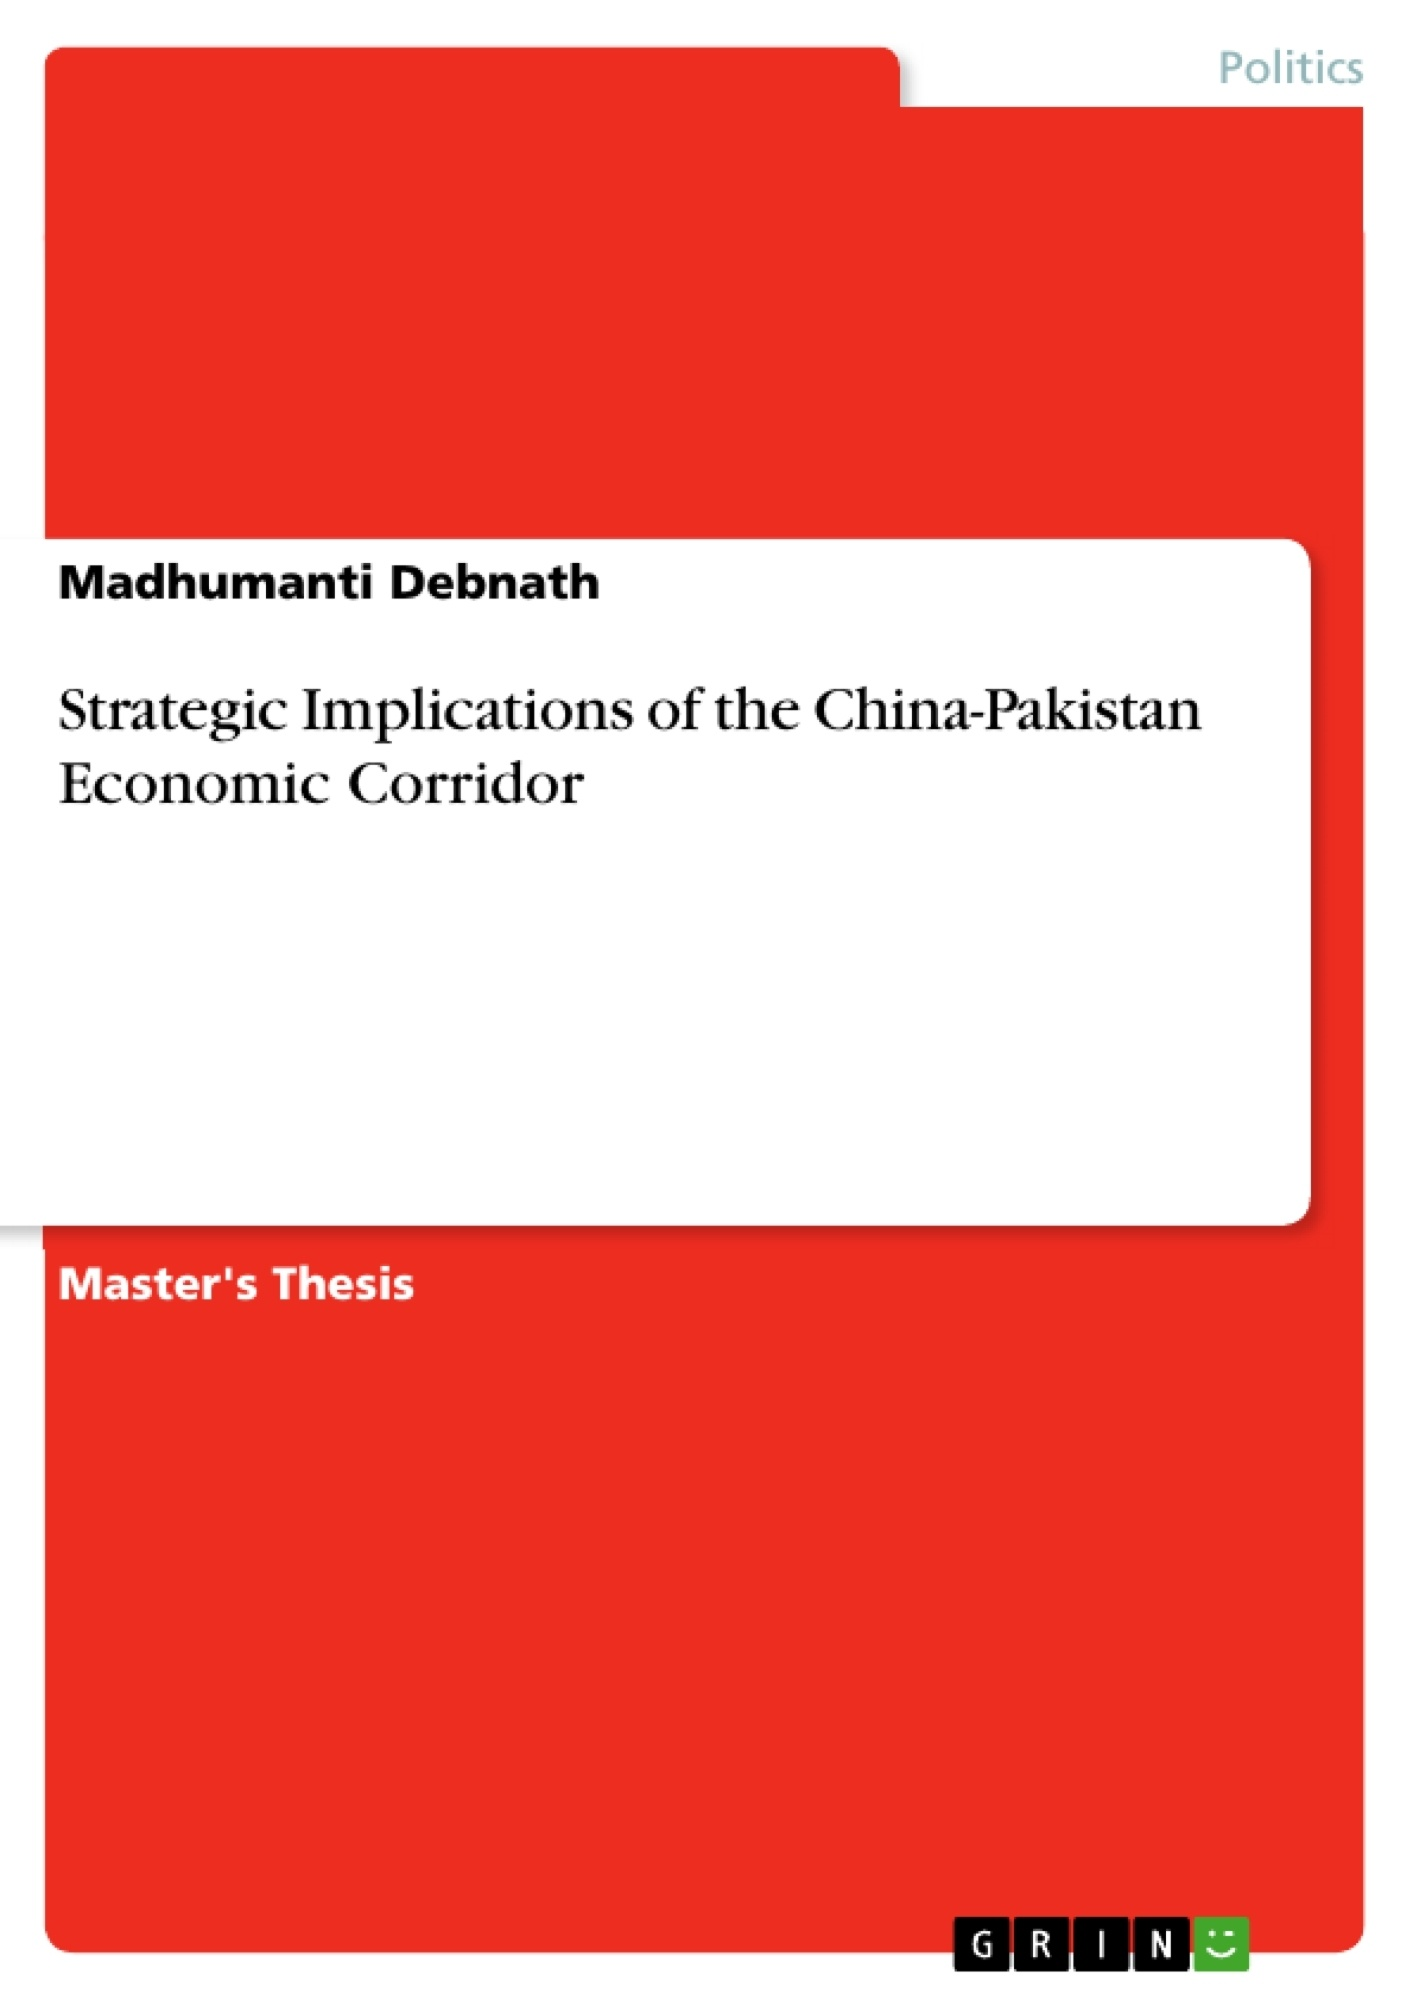 010 Chinese Economy Research Paper Topics 375337 0 Awful Full